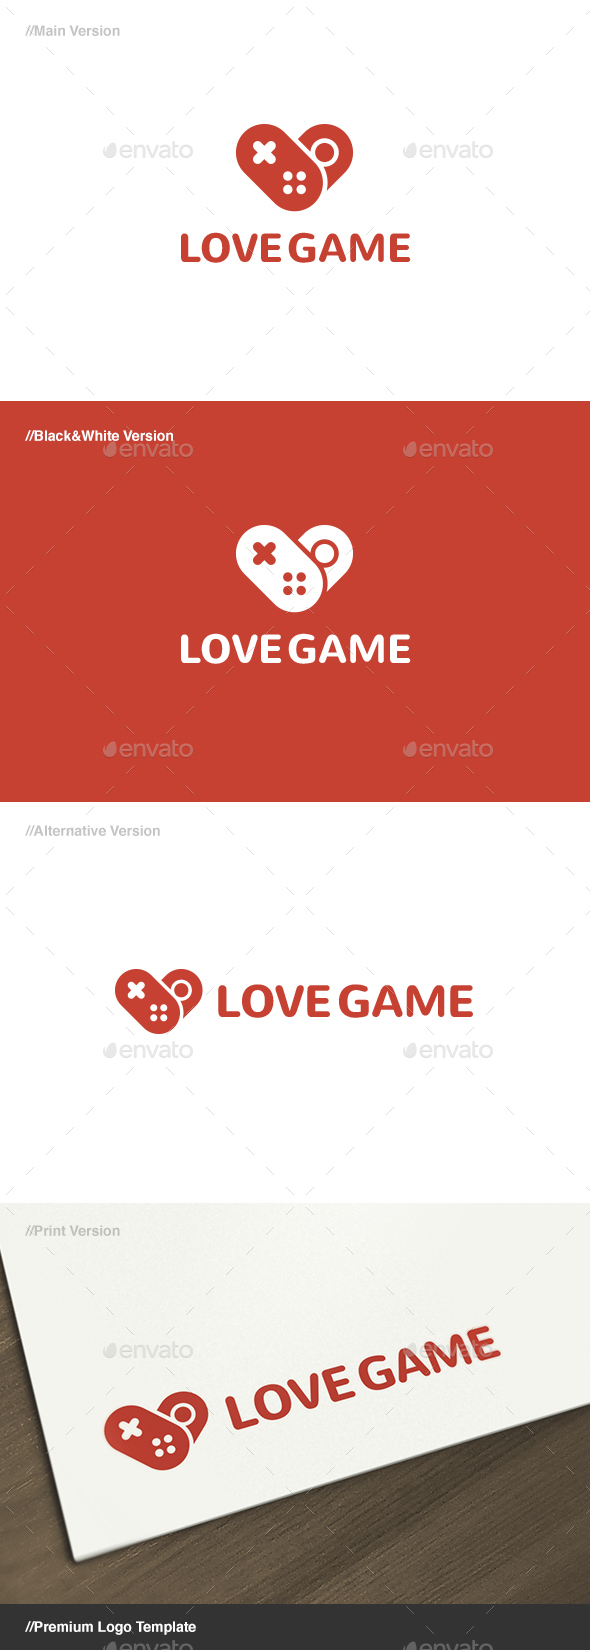 Love Game Logo